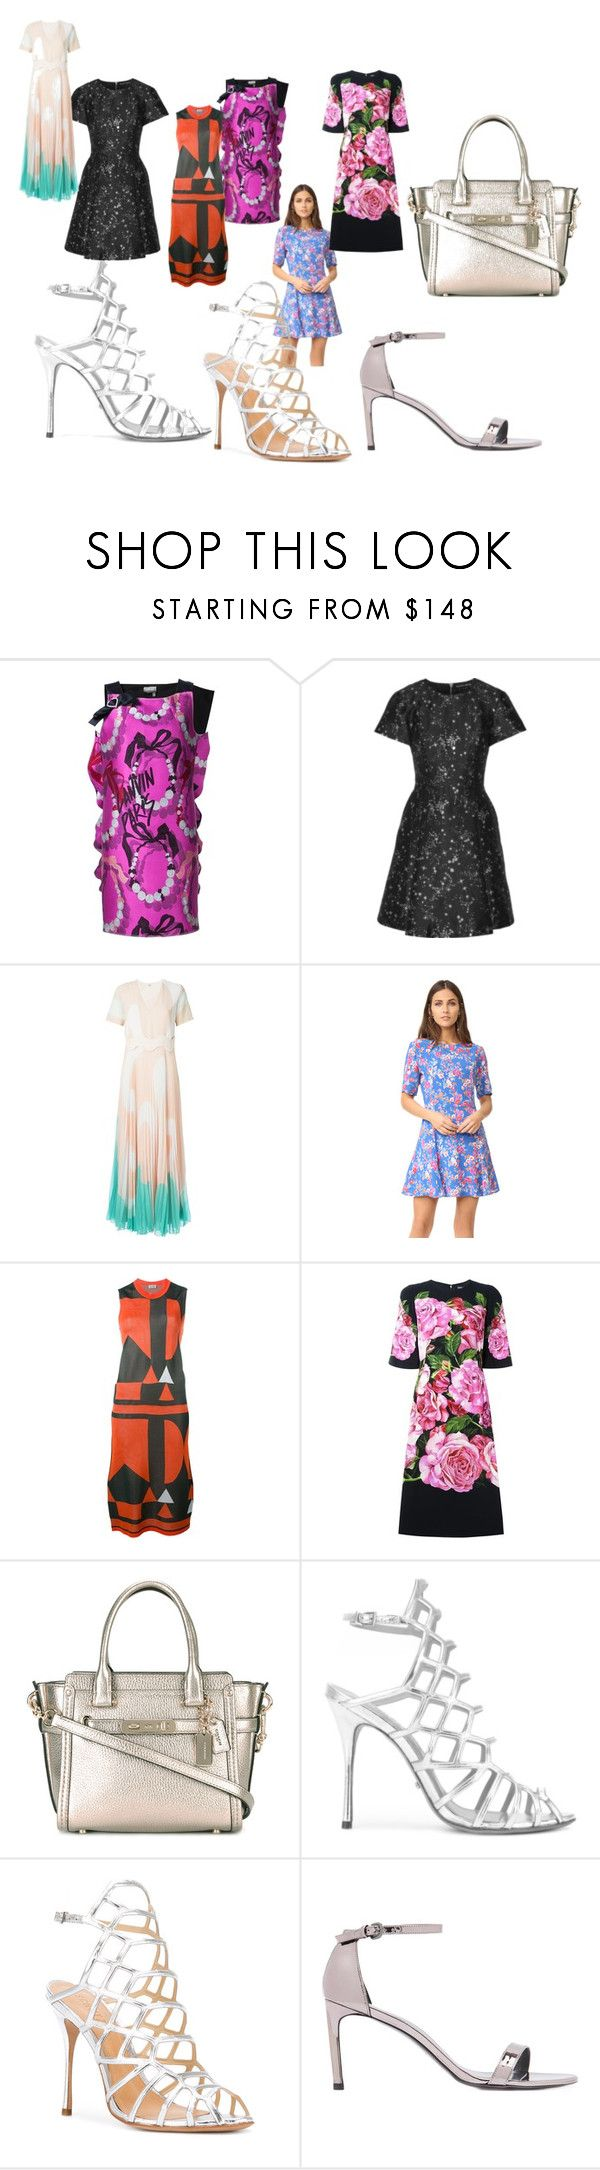 """best sale offer to you"" by denisee-denisee ❤ liked on Polyvore featuring Lanvin, Markus Lupfer, Issa, Tularosa, Arthur Arbesser, Dolce&Gabbana, Coach, Schutz, Stuart Weitzman and vintage"